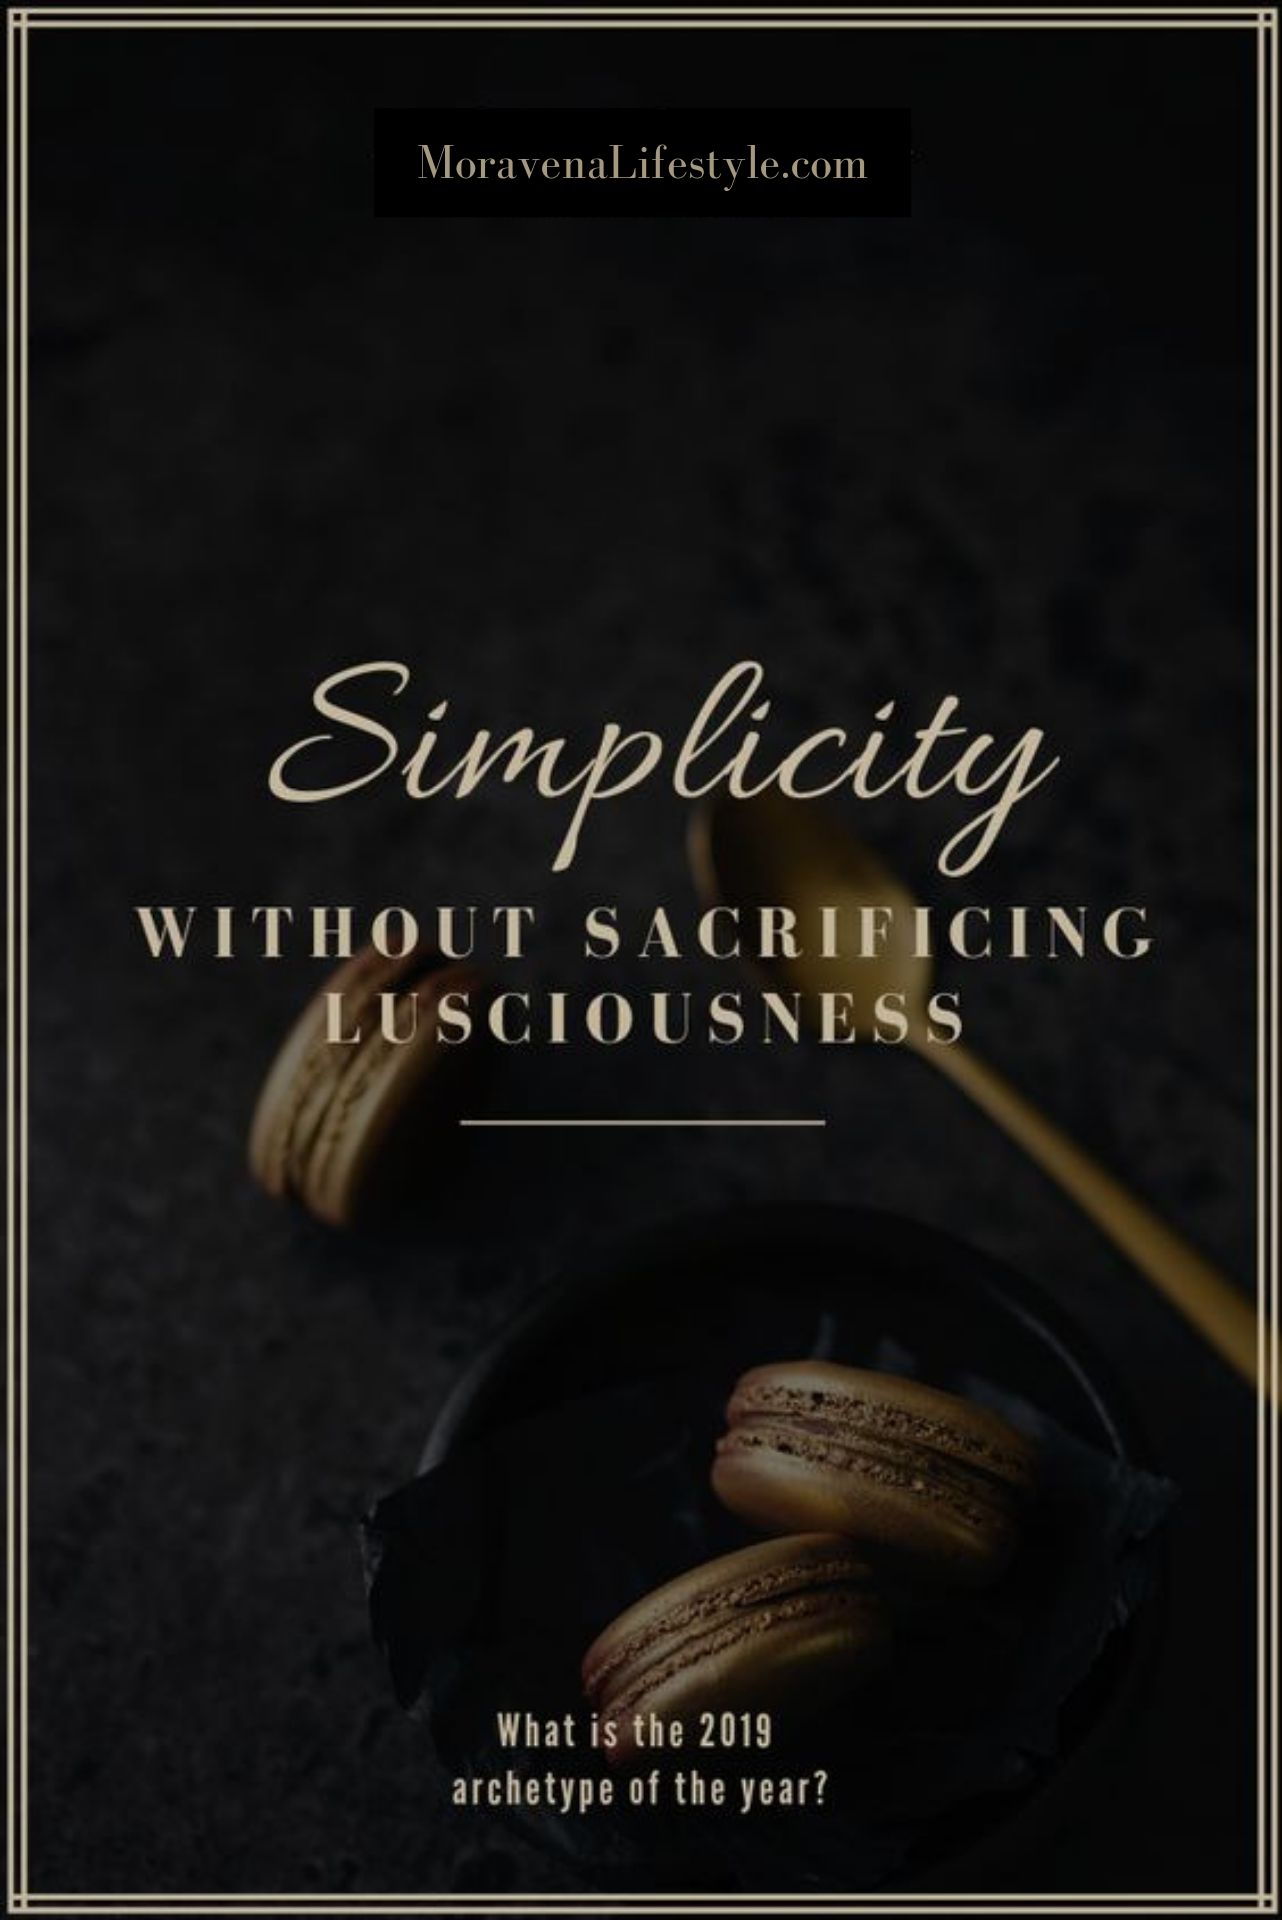 Finding my way back to simplicity without sacrificing lusciousness. -